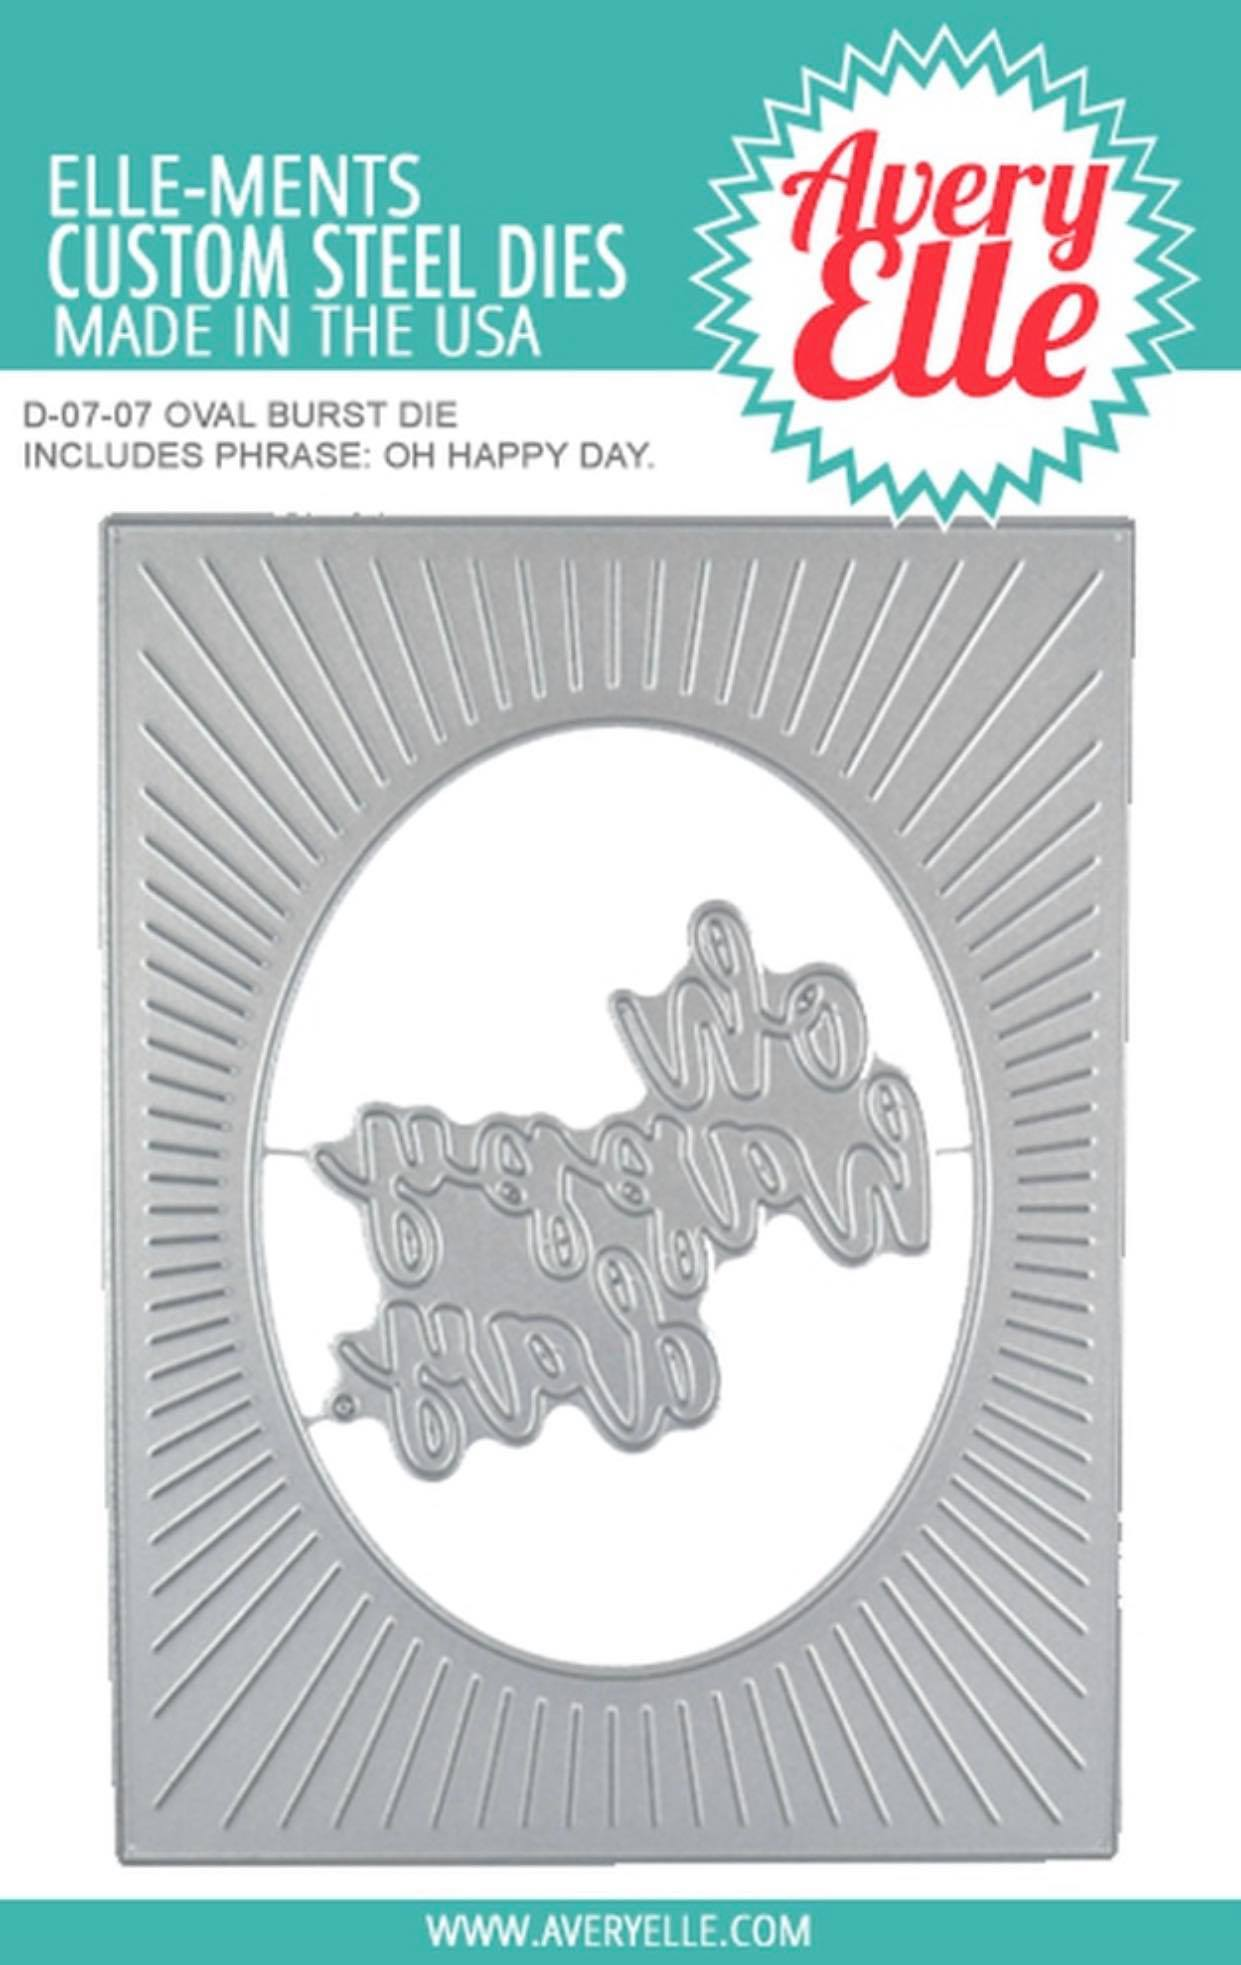 Avery Elle - Oval Burst Die